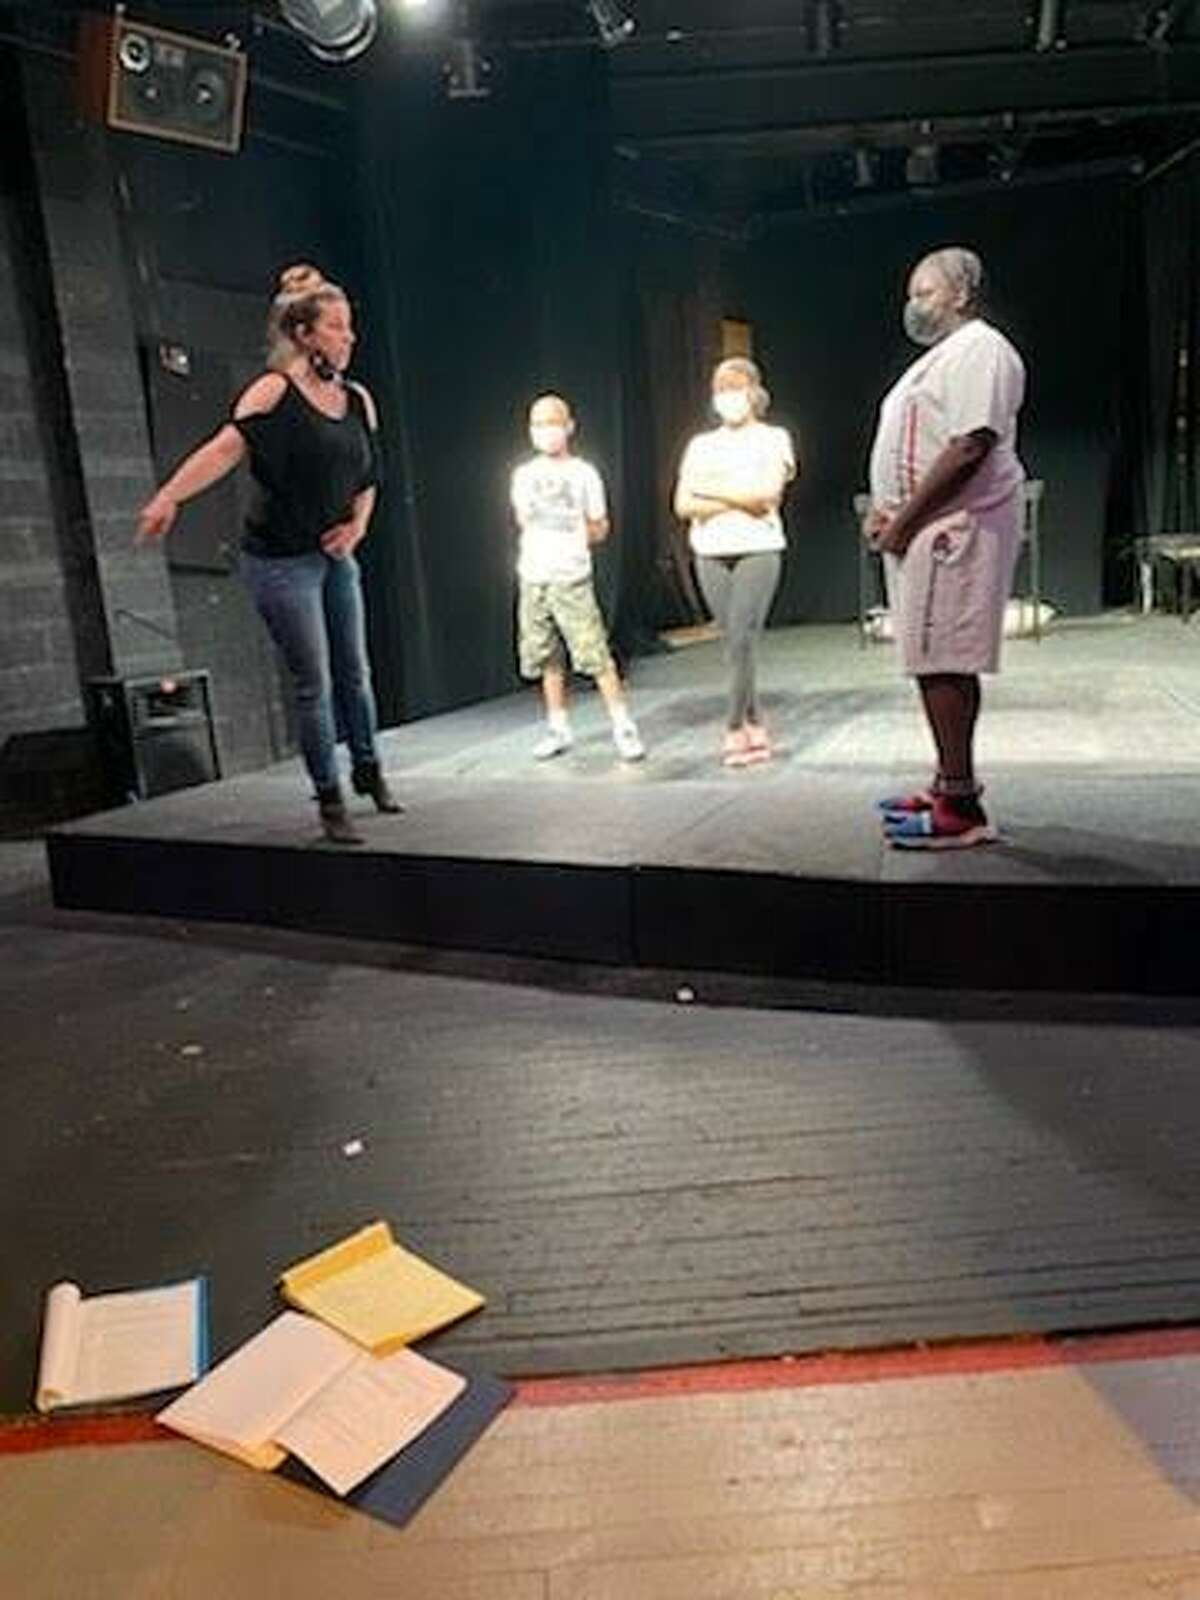 Young performers gathered by Ice the Beef and Elm City Shakespeare will perform Romeo & Juliet Saturday, asking residents to consider how this conflict, as well as those that prompt gun violence in the community, could be settled peacefully.